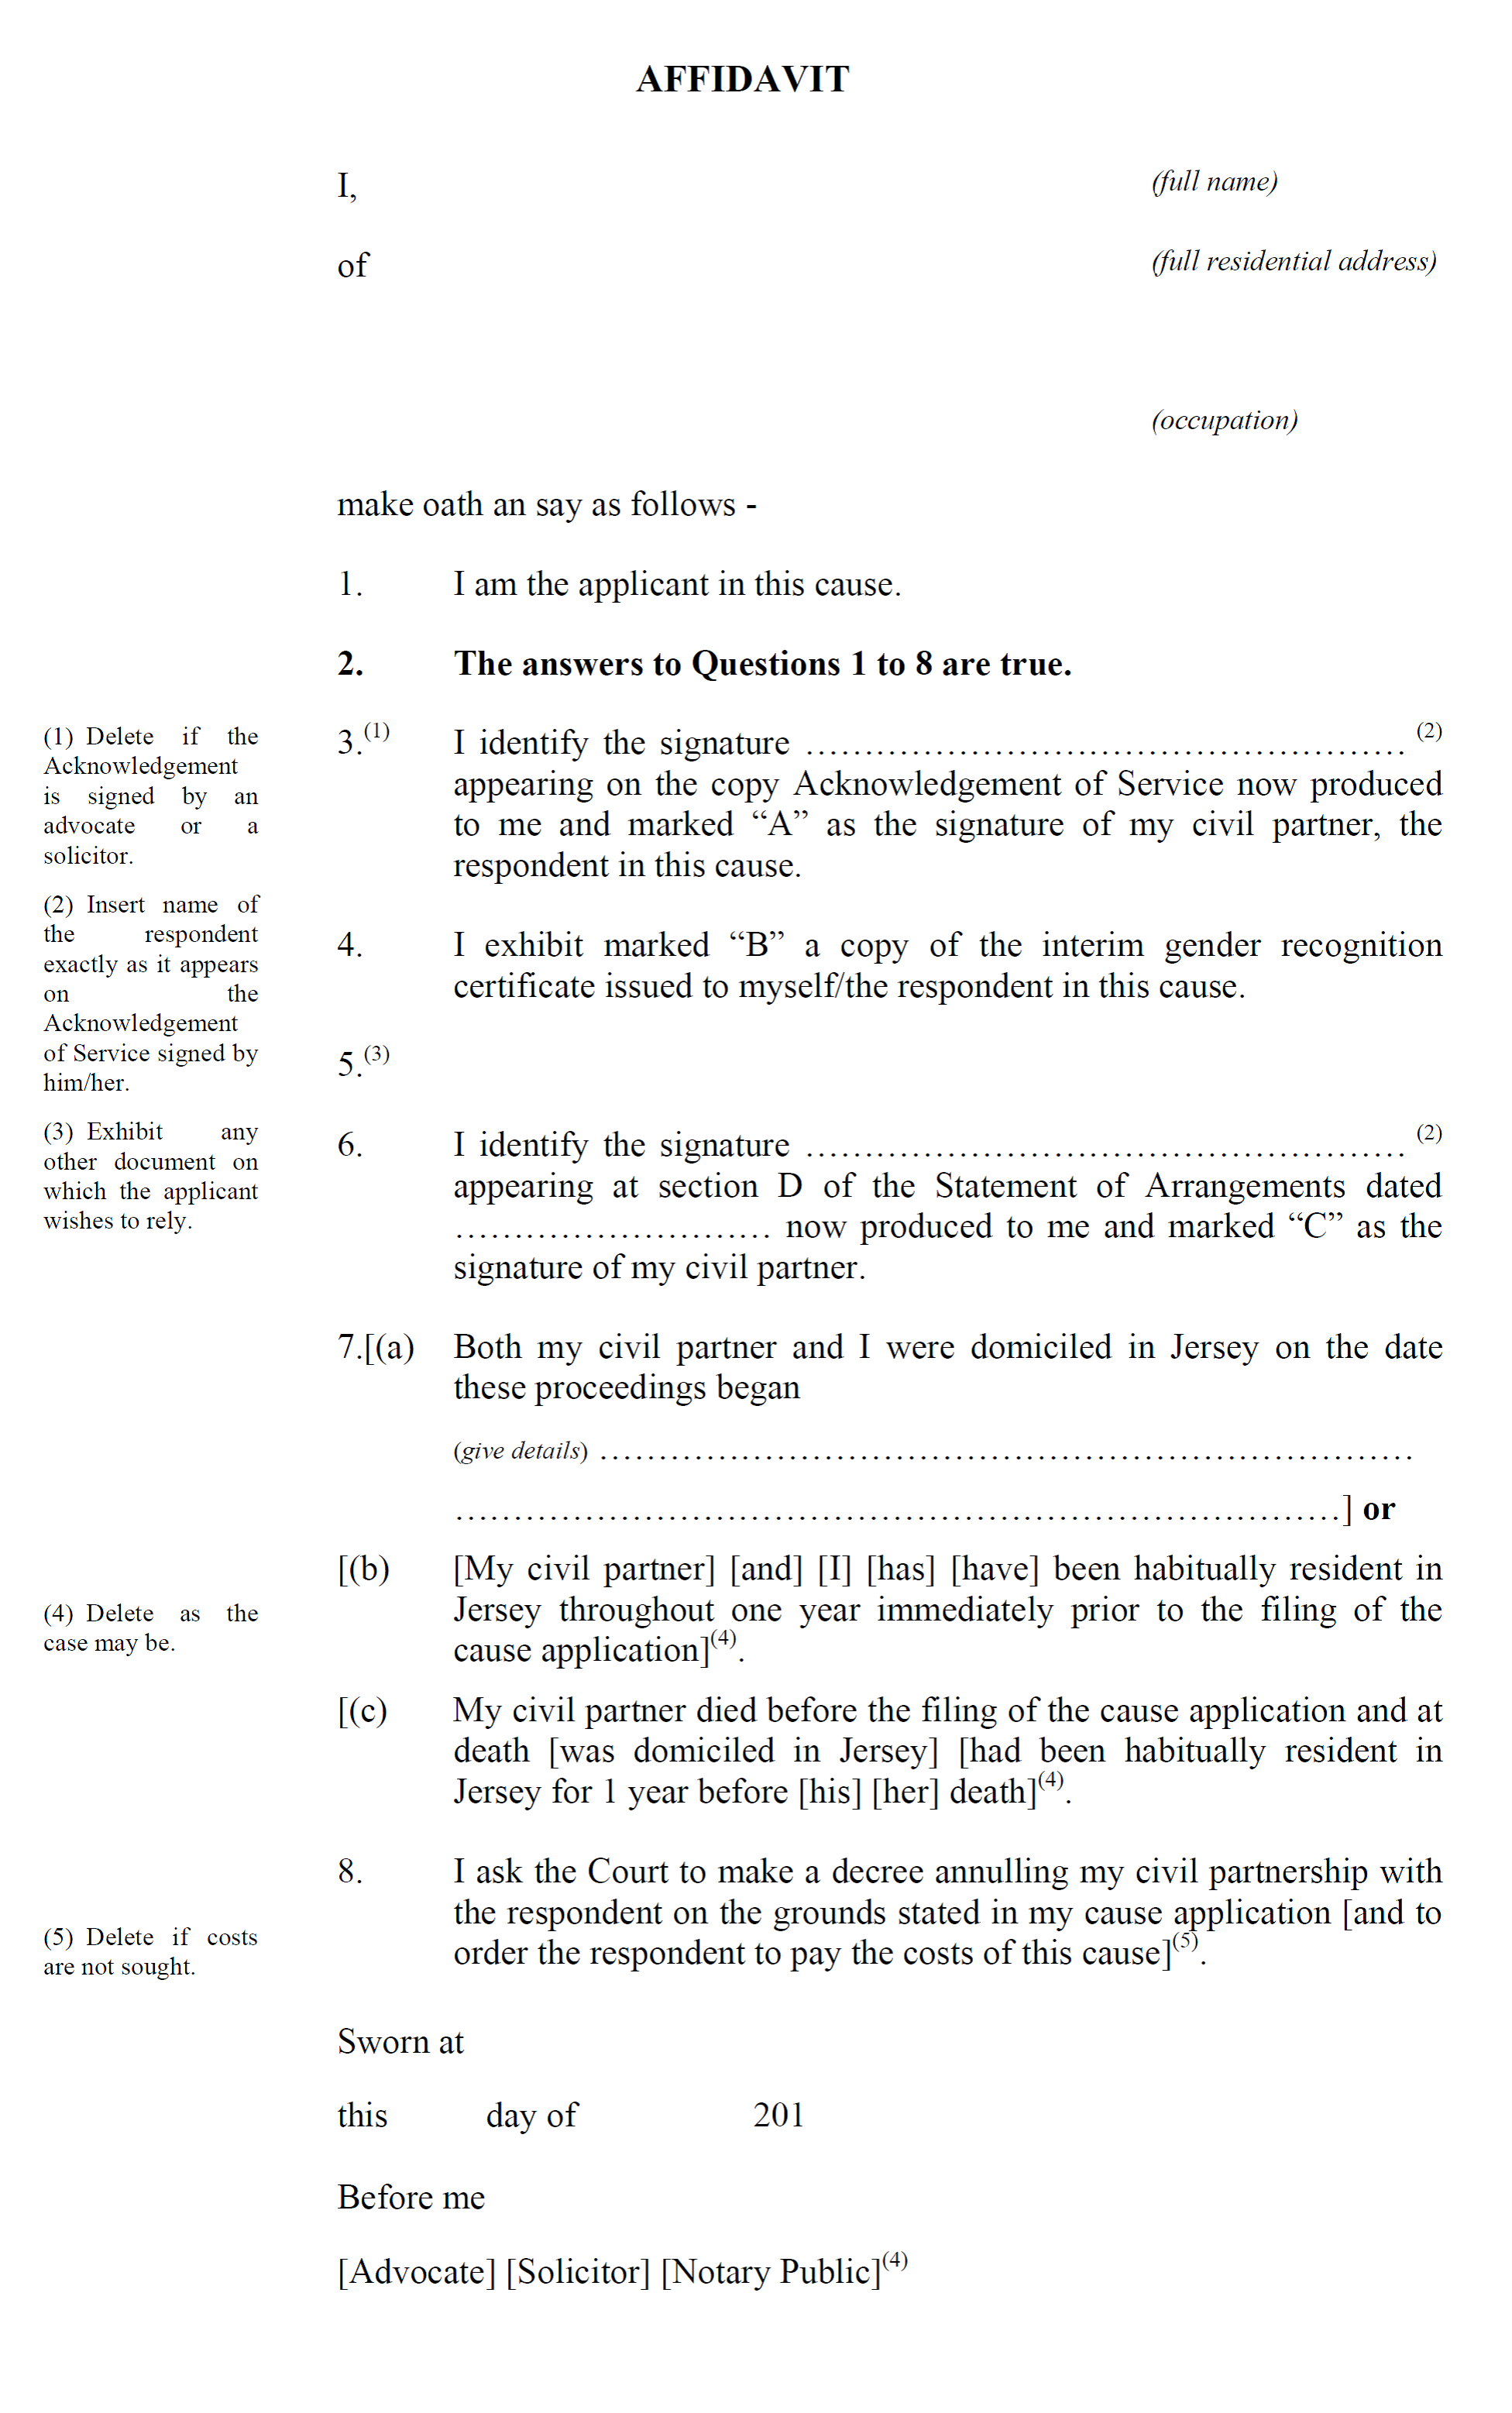 Form CP8   Affidavit By Applicant In Support Of Cause Application For  Annulment Under Article 28